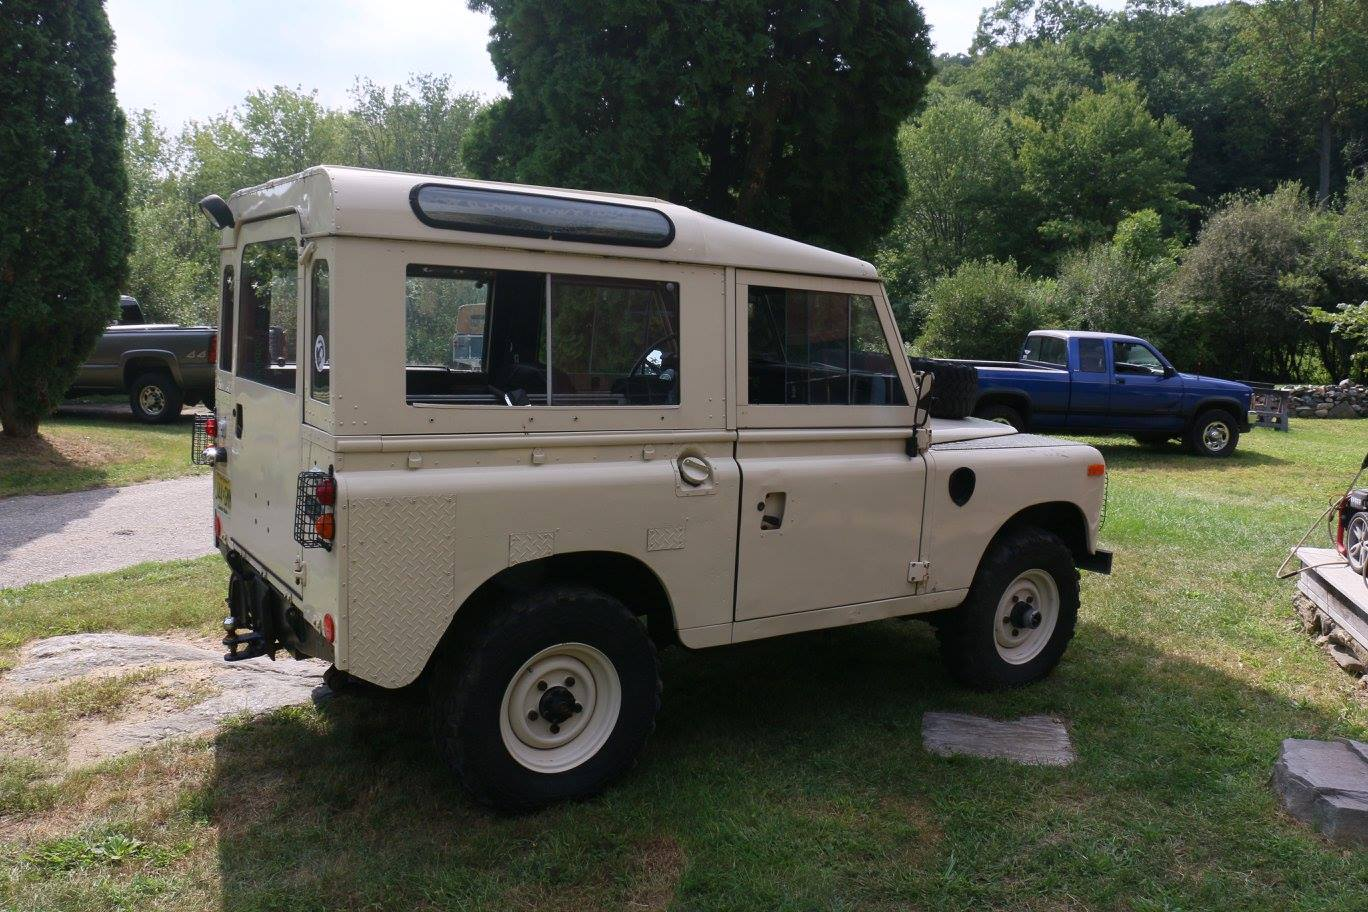 The 1973 Land Rover Series III Marine Blue as it arrived.